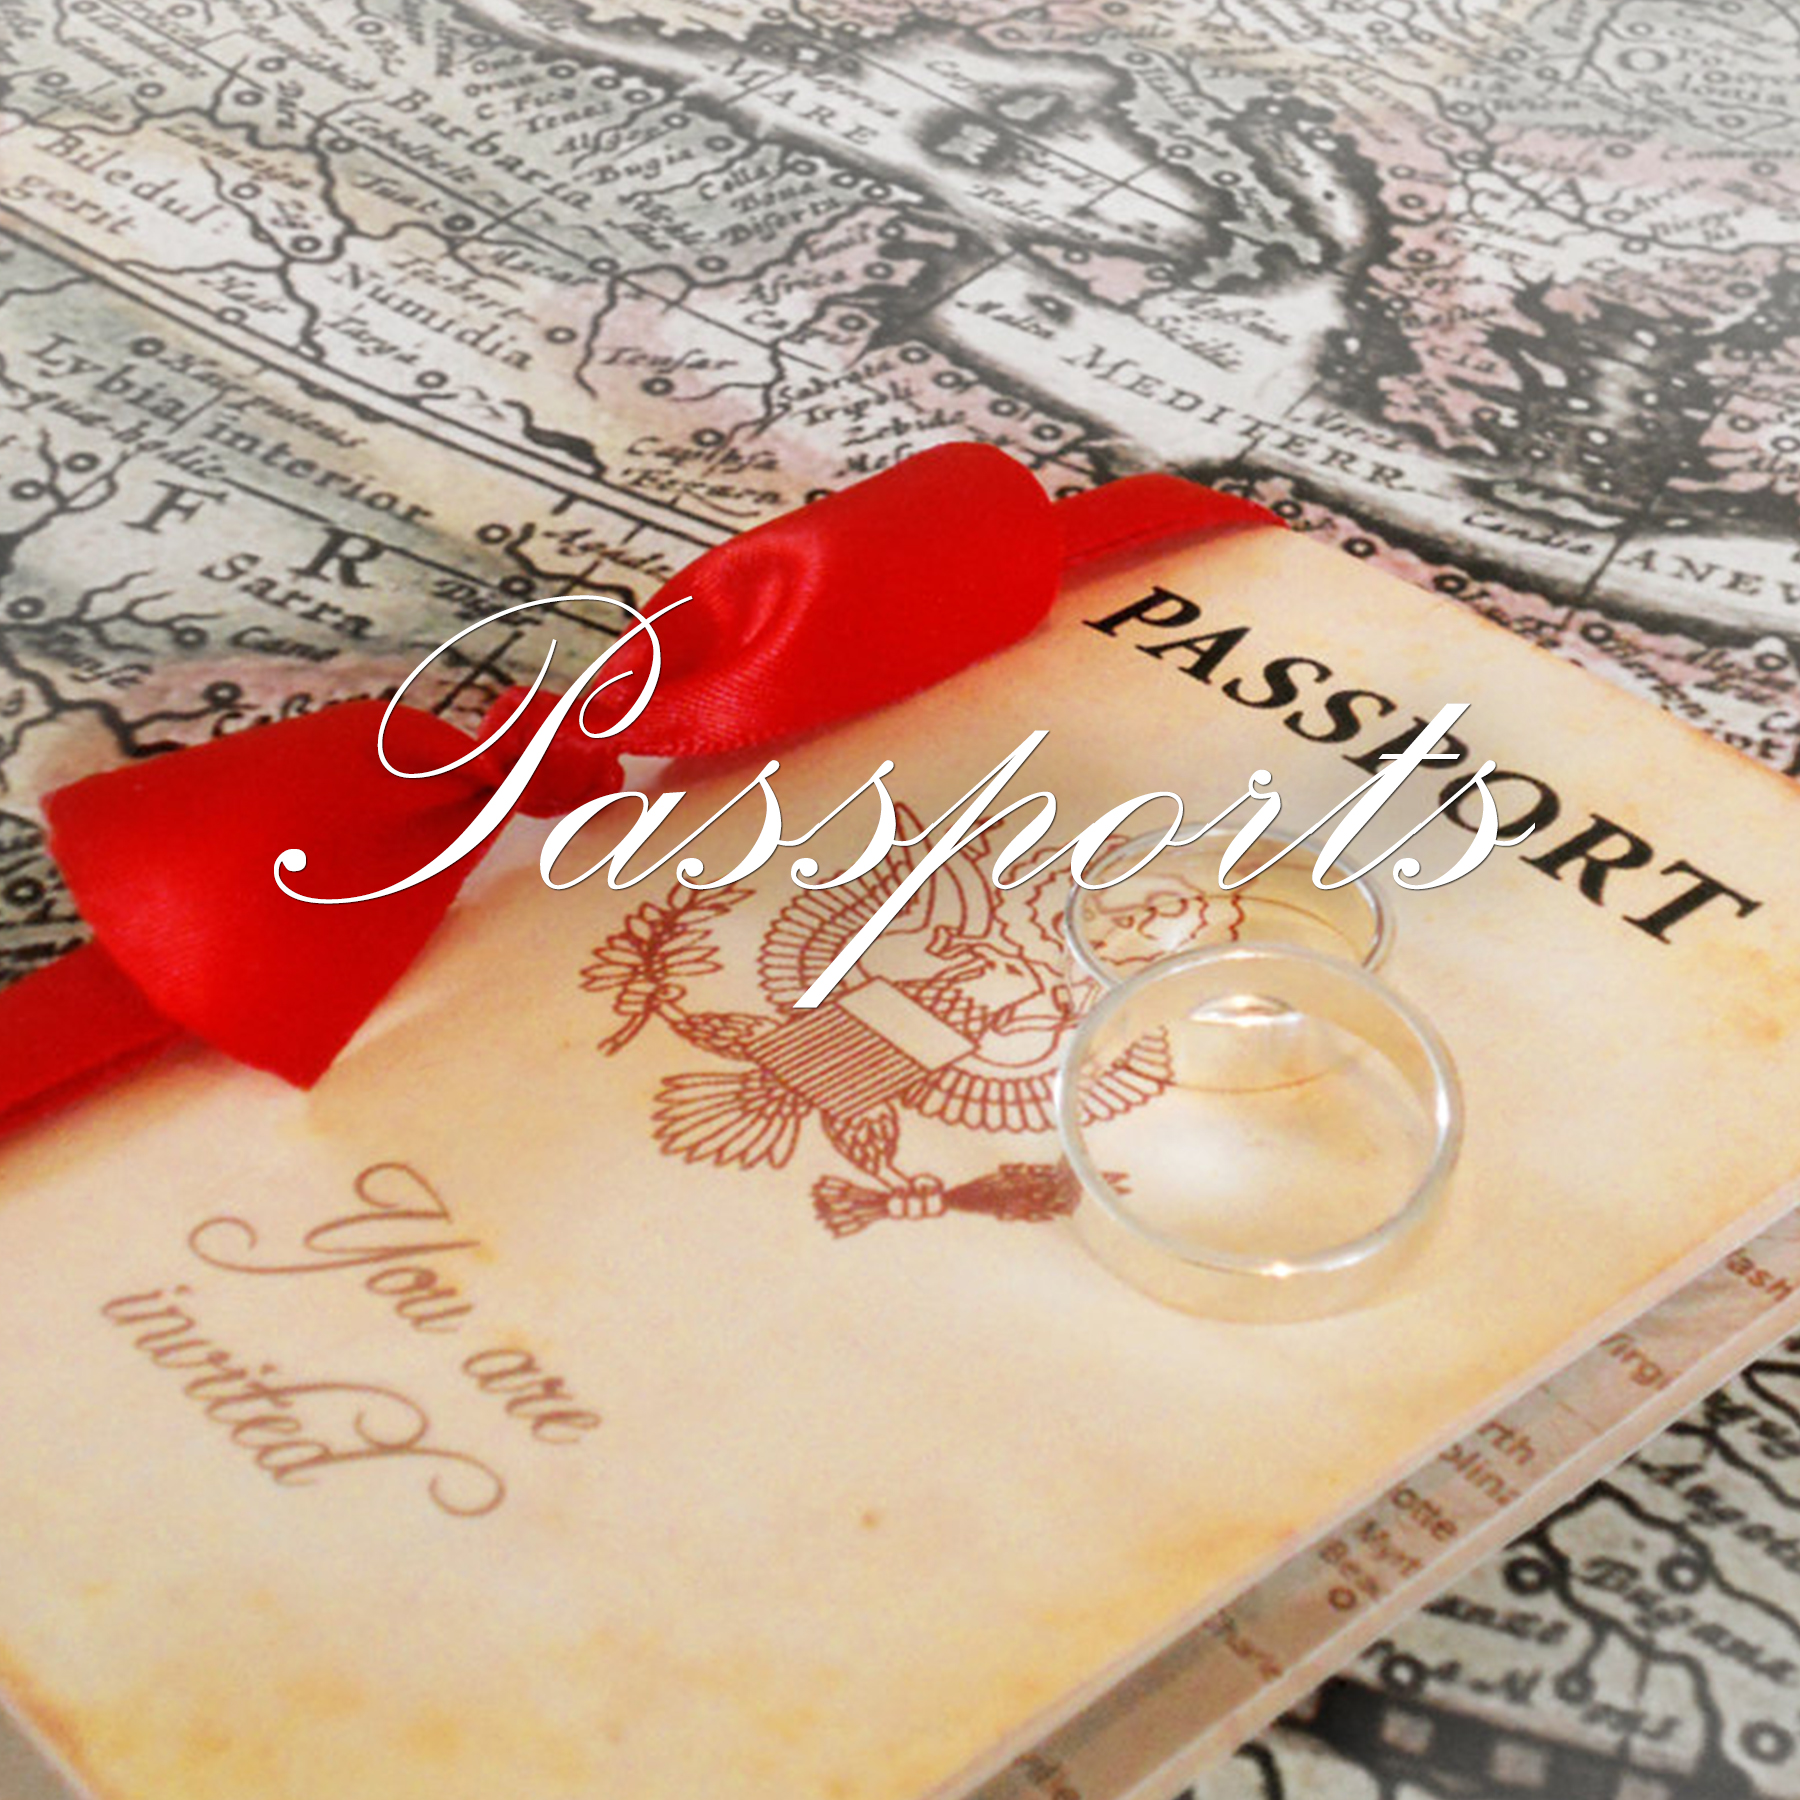 Passports and Booklets - Designed with Amore Custom invitations